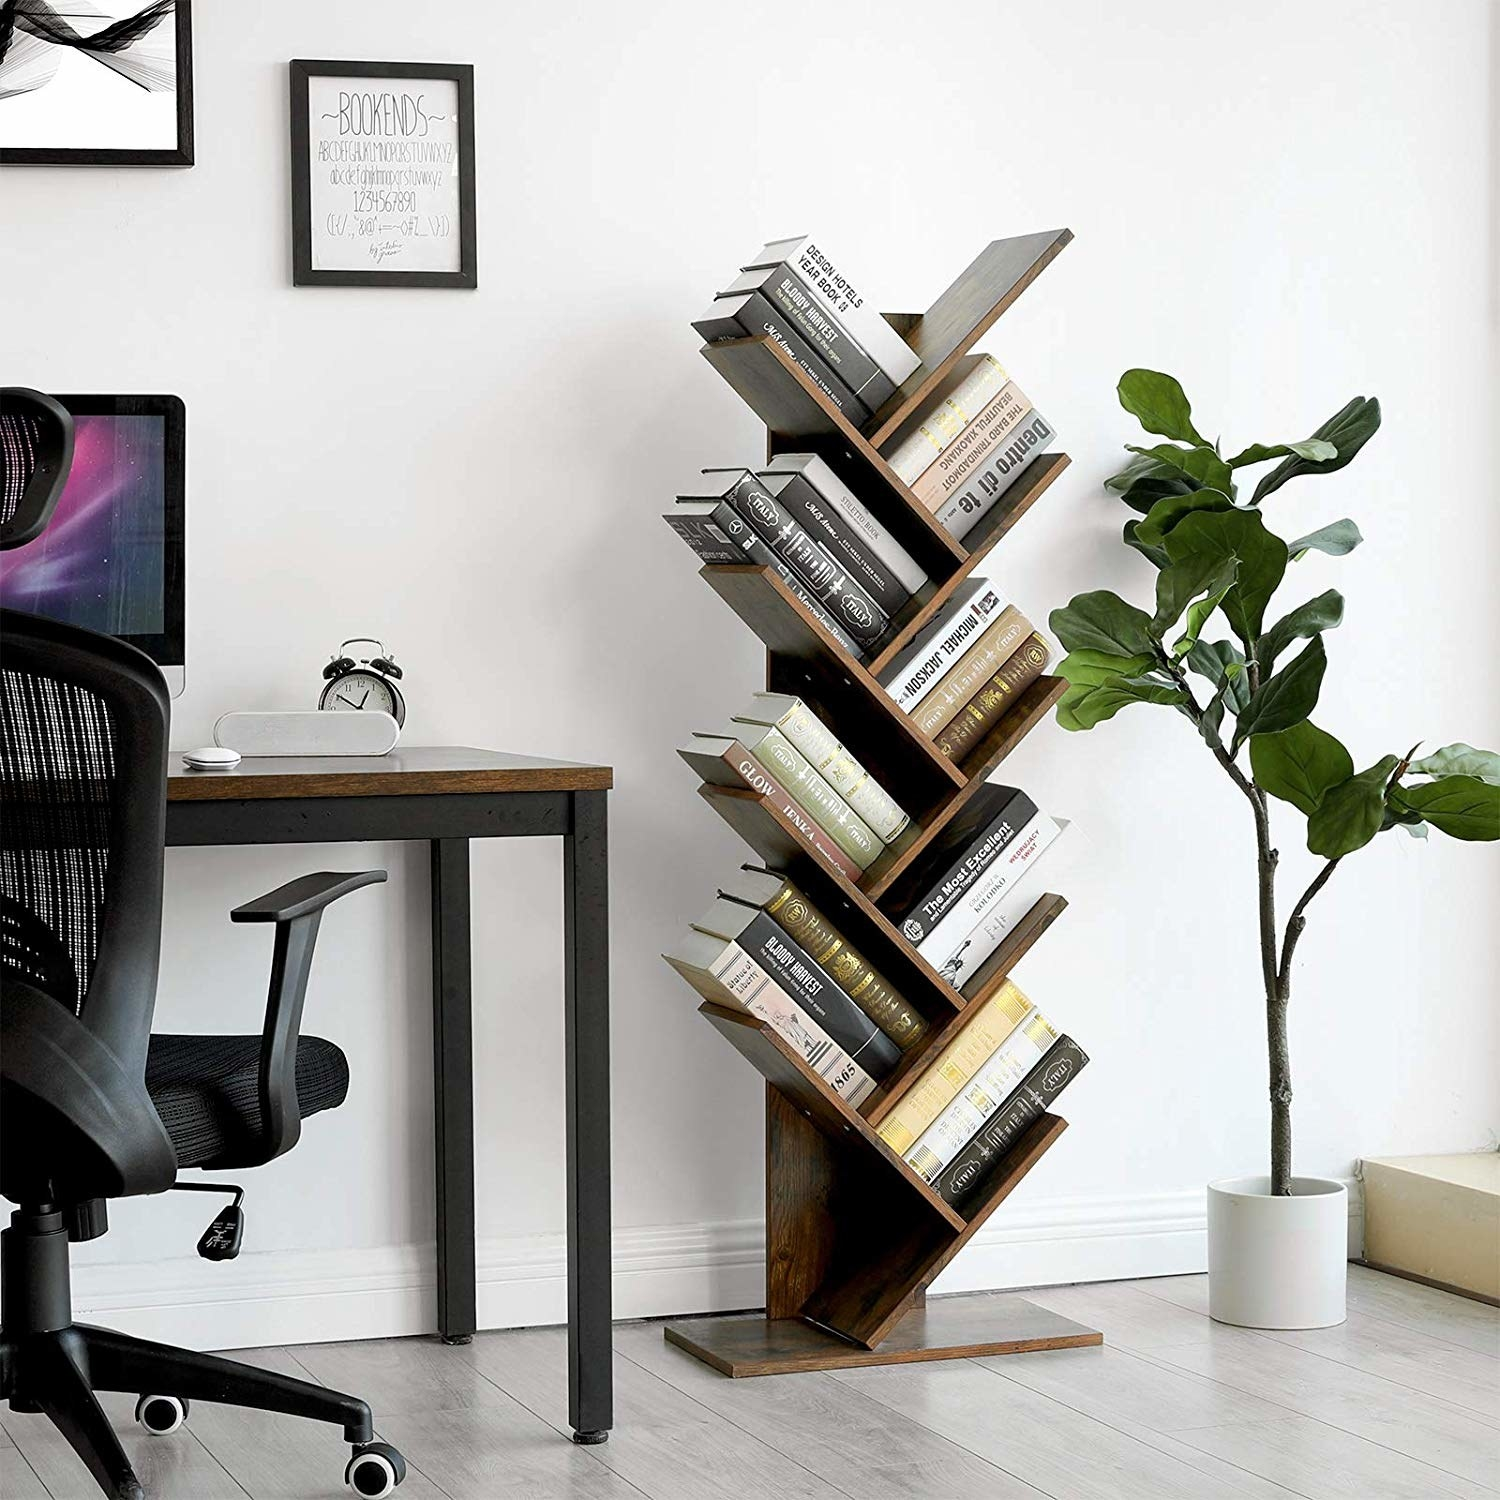 the bookcase which is vertical with slanted shelves